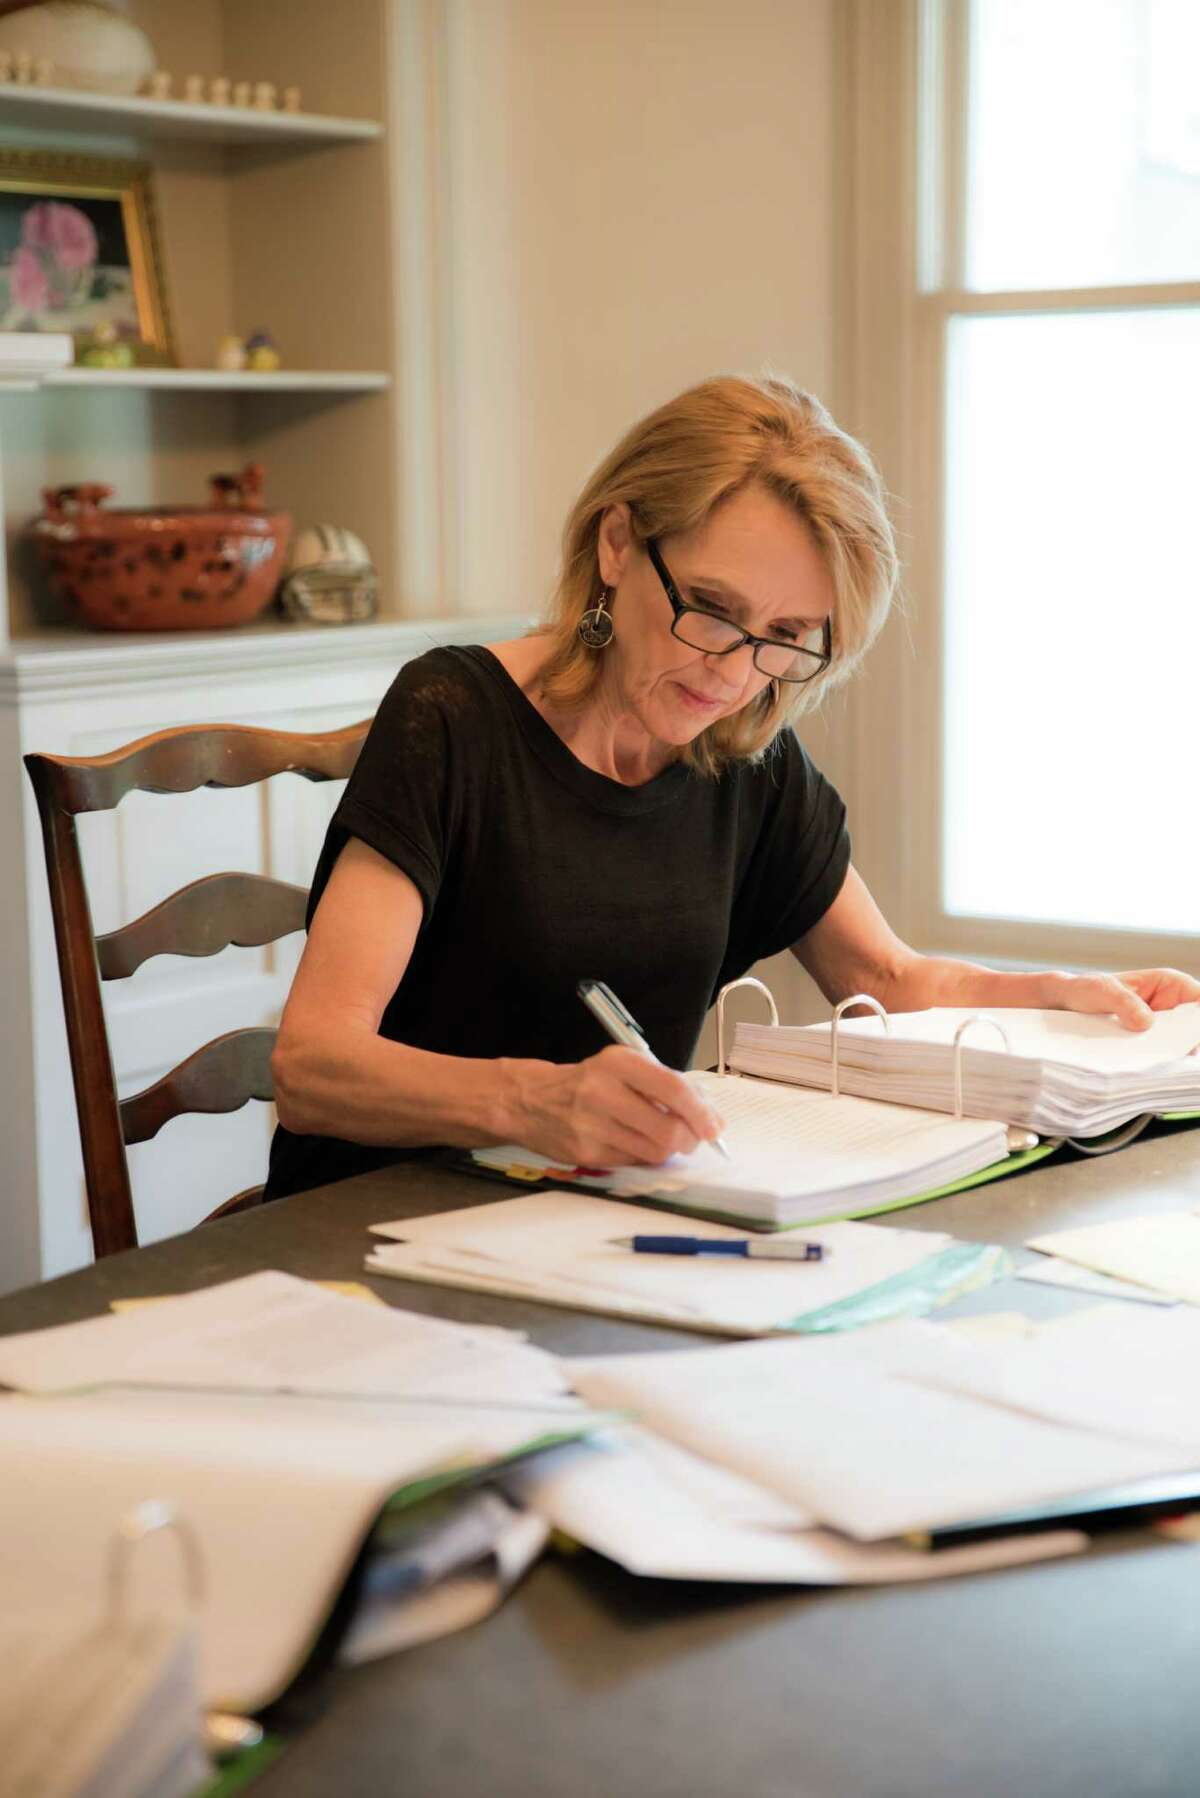 Author Charlotte Rogan at work on her third book in her home in Westport.